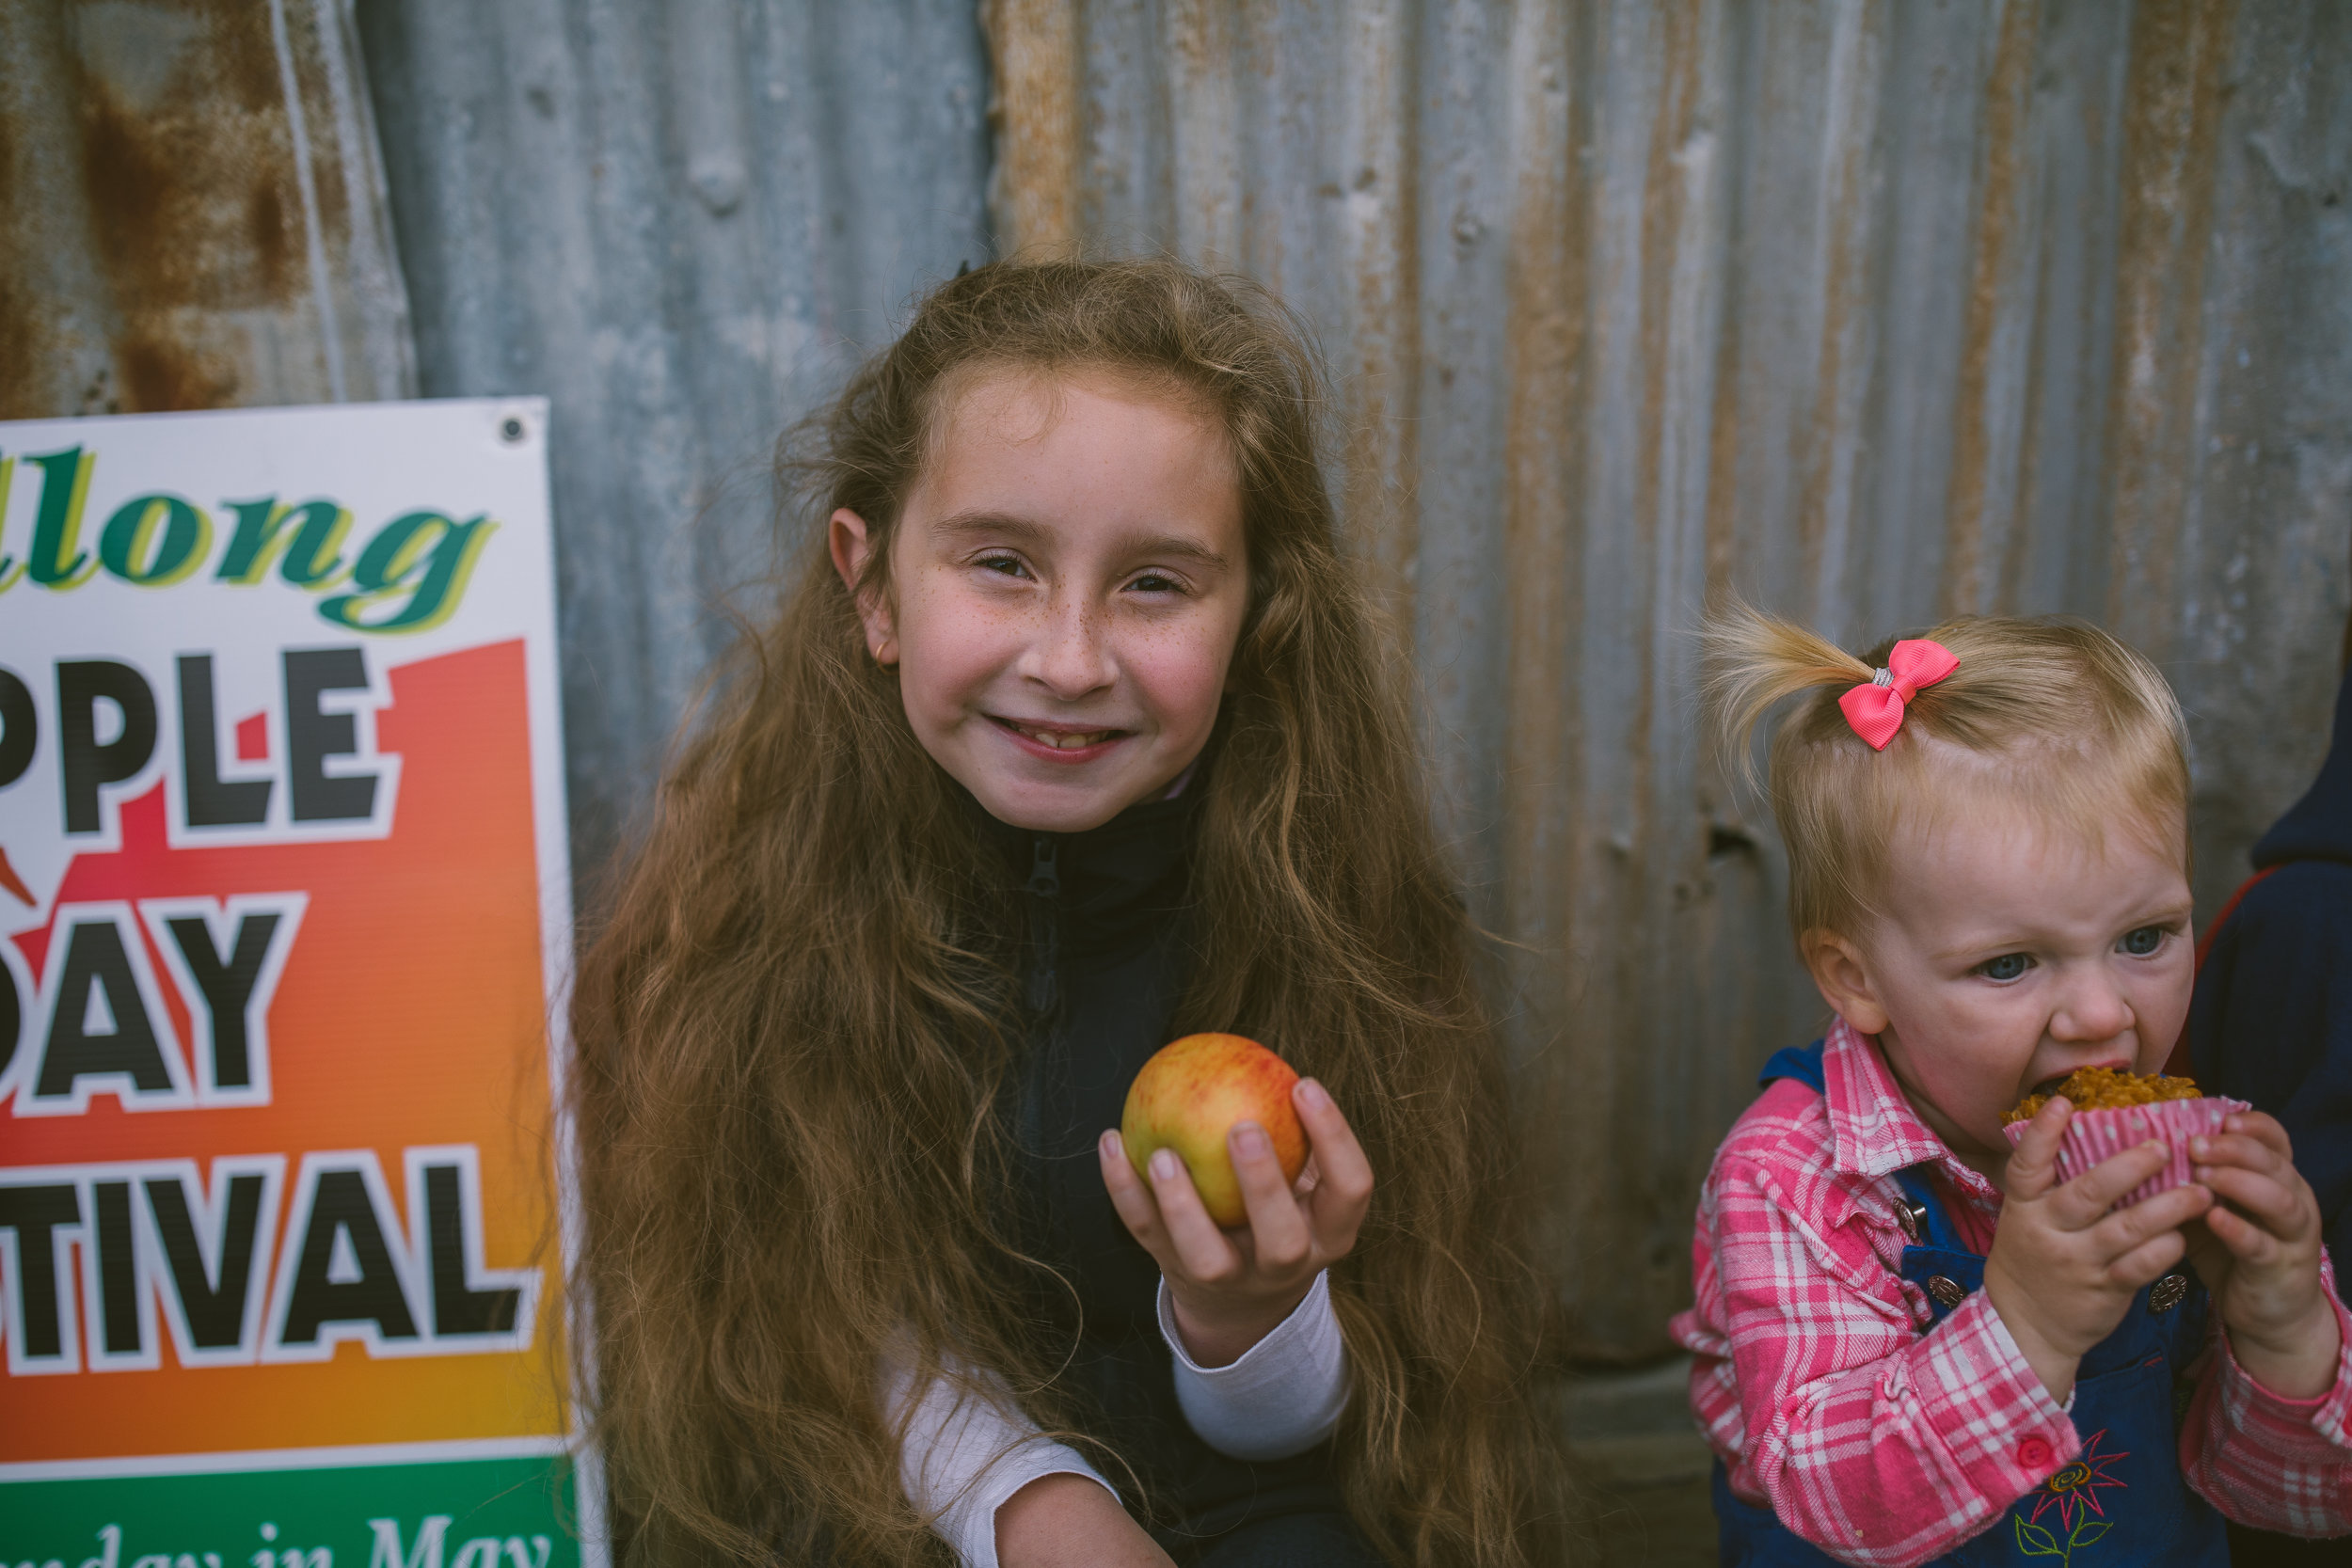 apple day promo magus agren photography26.jpg